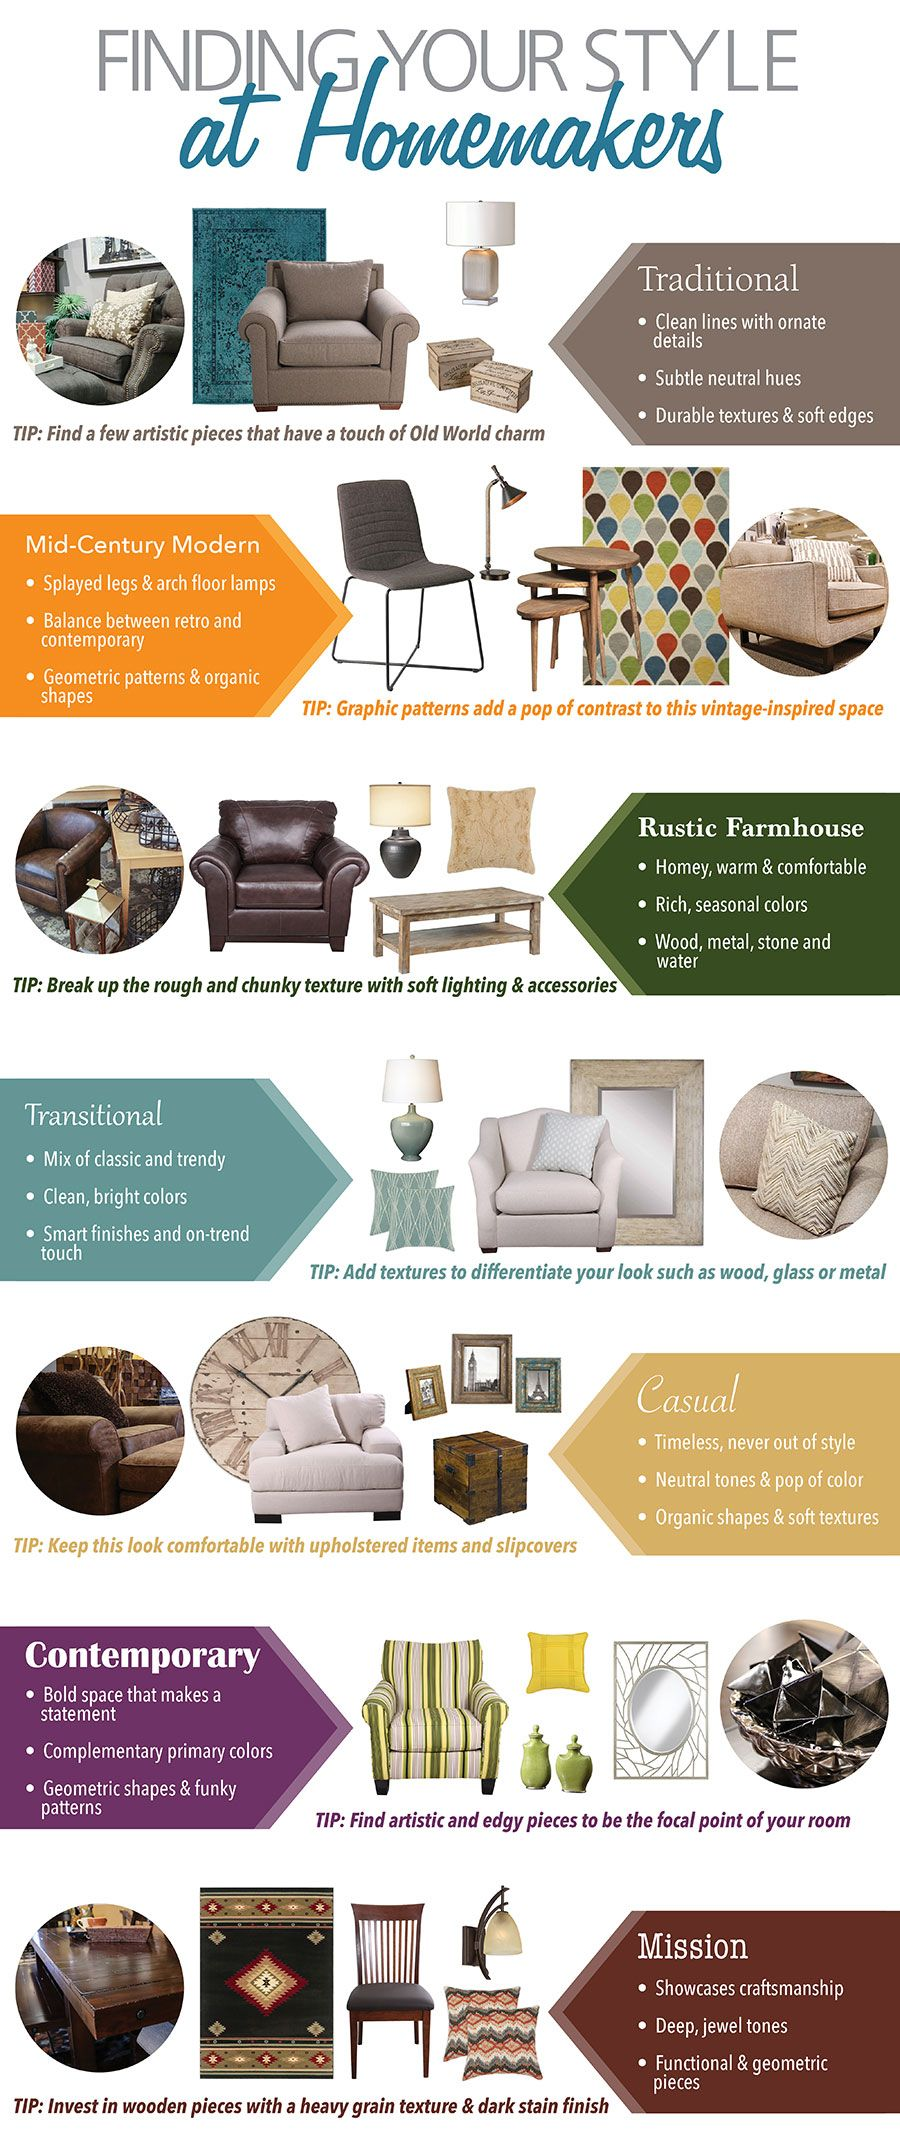 Classic And Modern Furniture Styles Defined Homemakers In 2020 Modern Style Furniture Furniture Styles Interior Design Styles